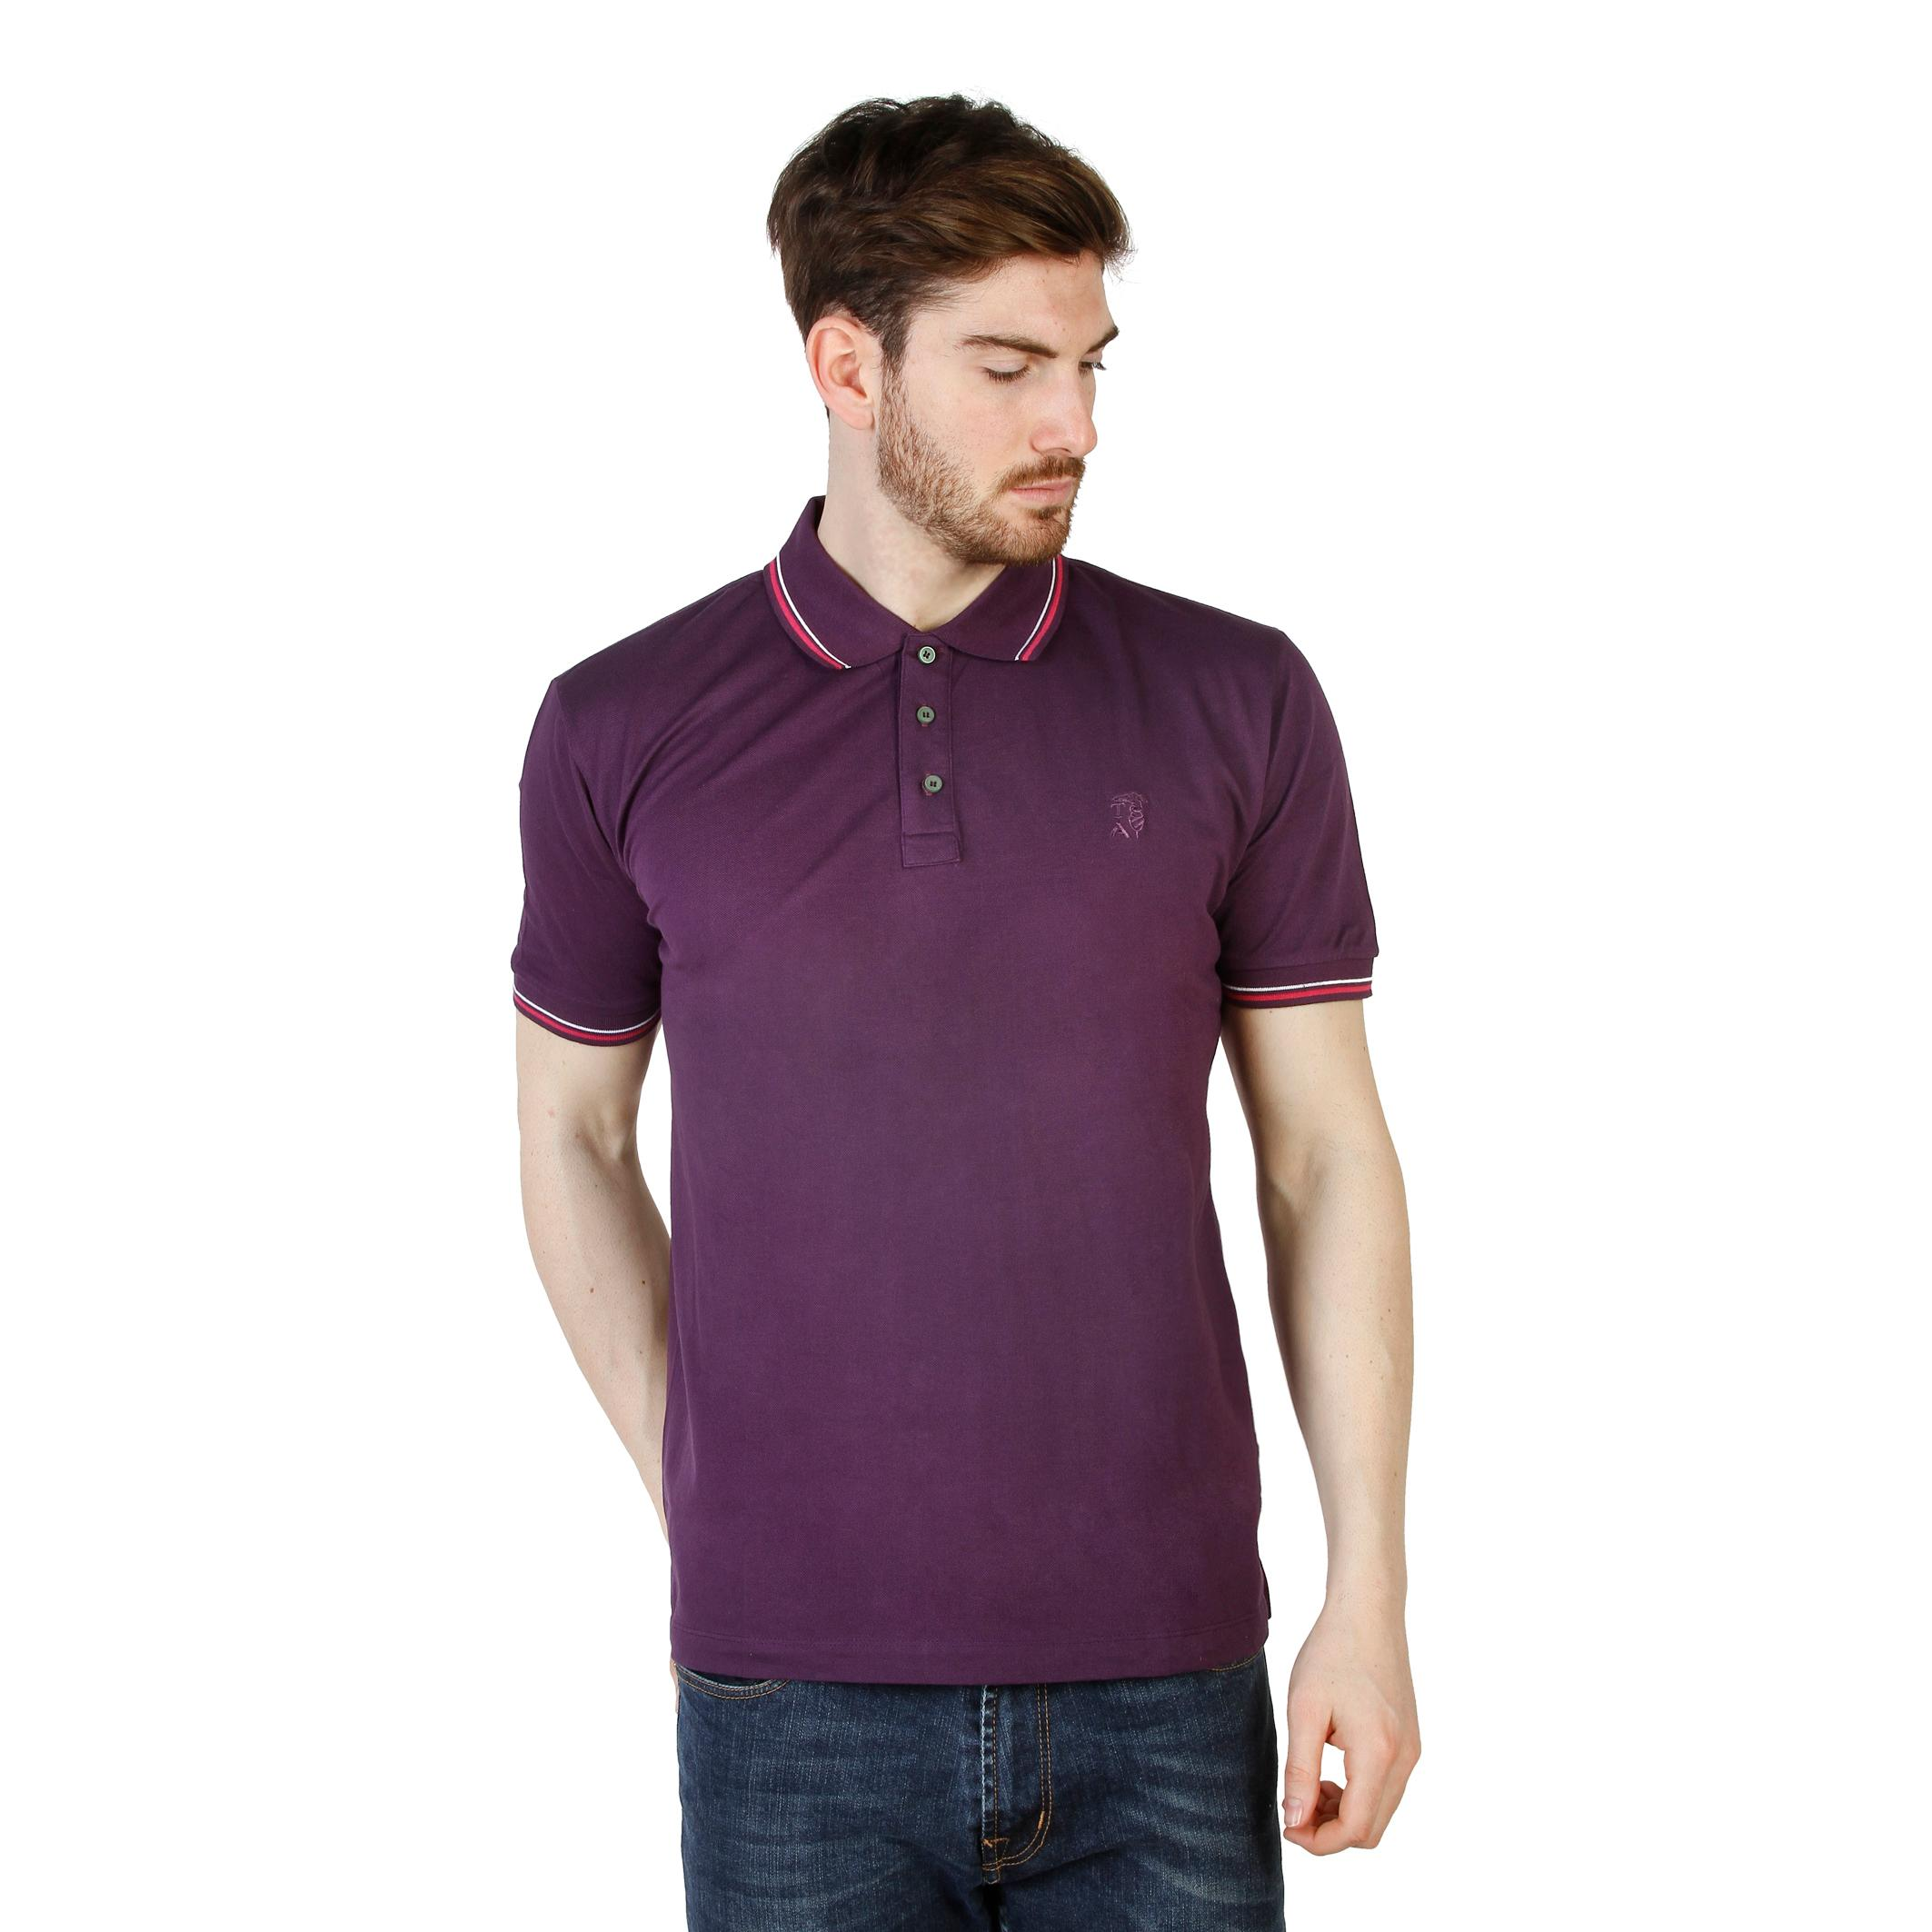 Polo Uomo Primavera/Estate Trussardi 2AT49 Colore: Viola - XL/ - trussardi - giordanoshop.com